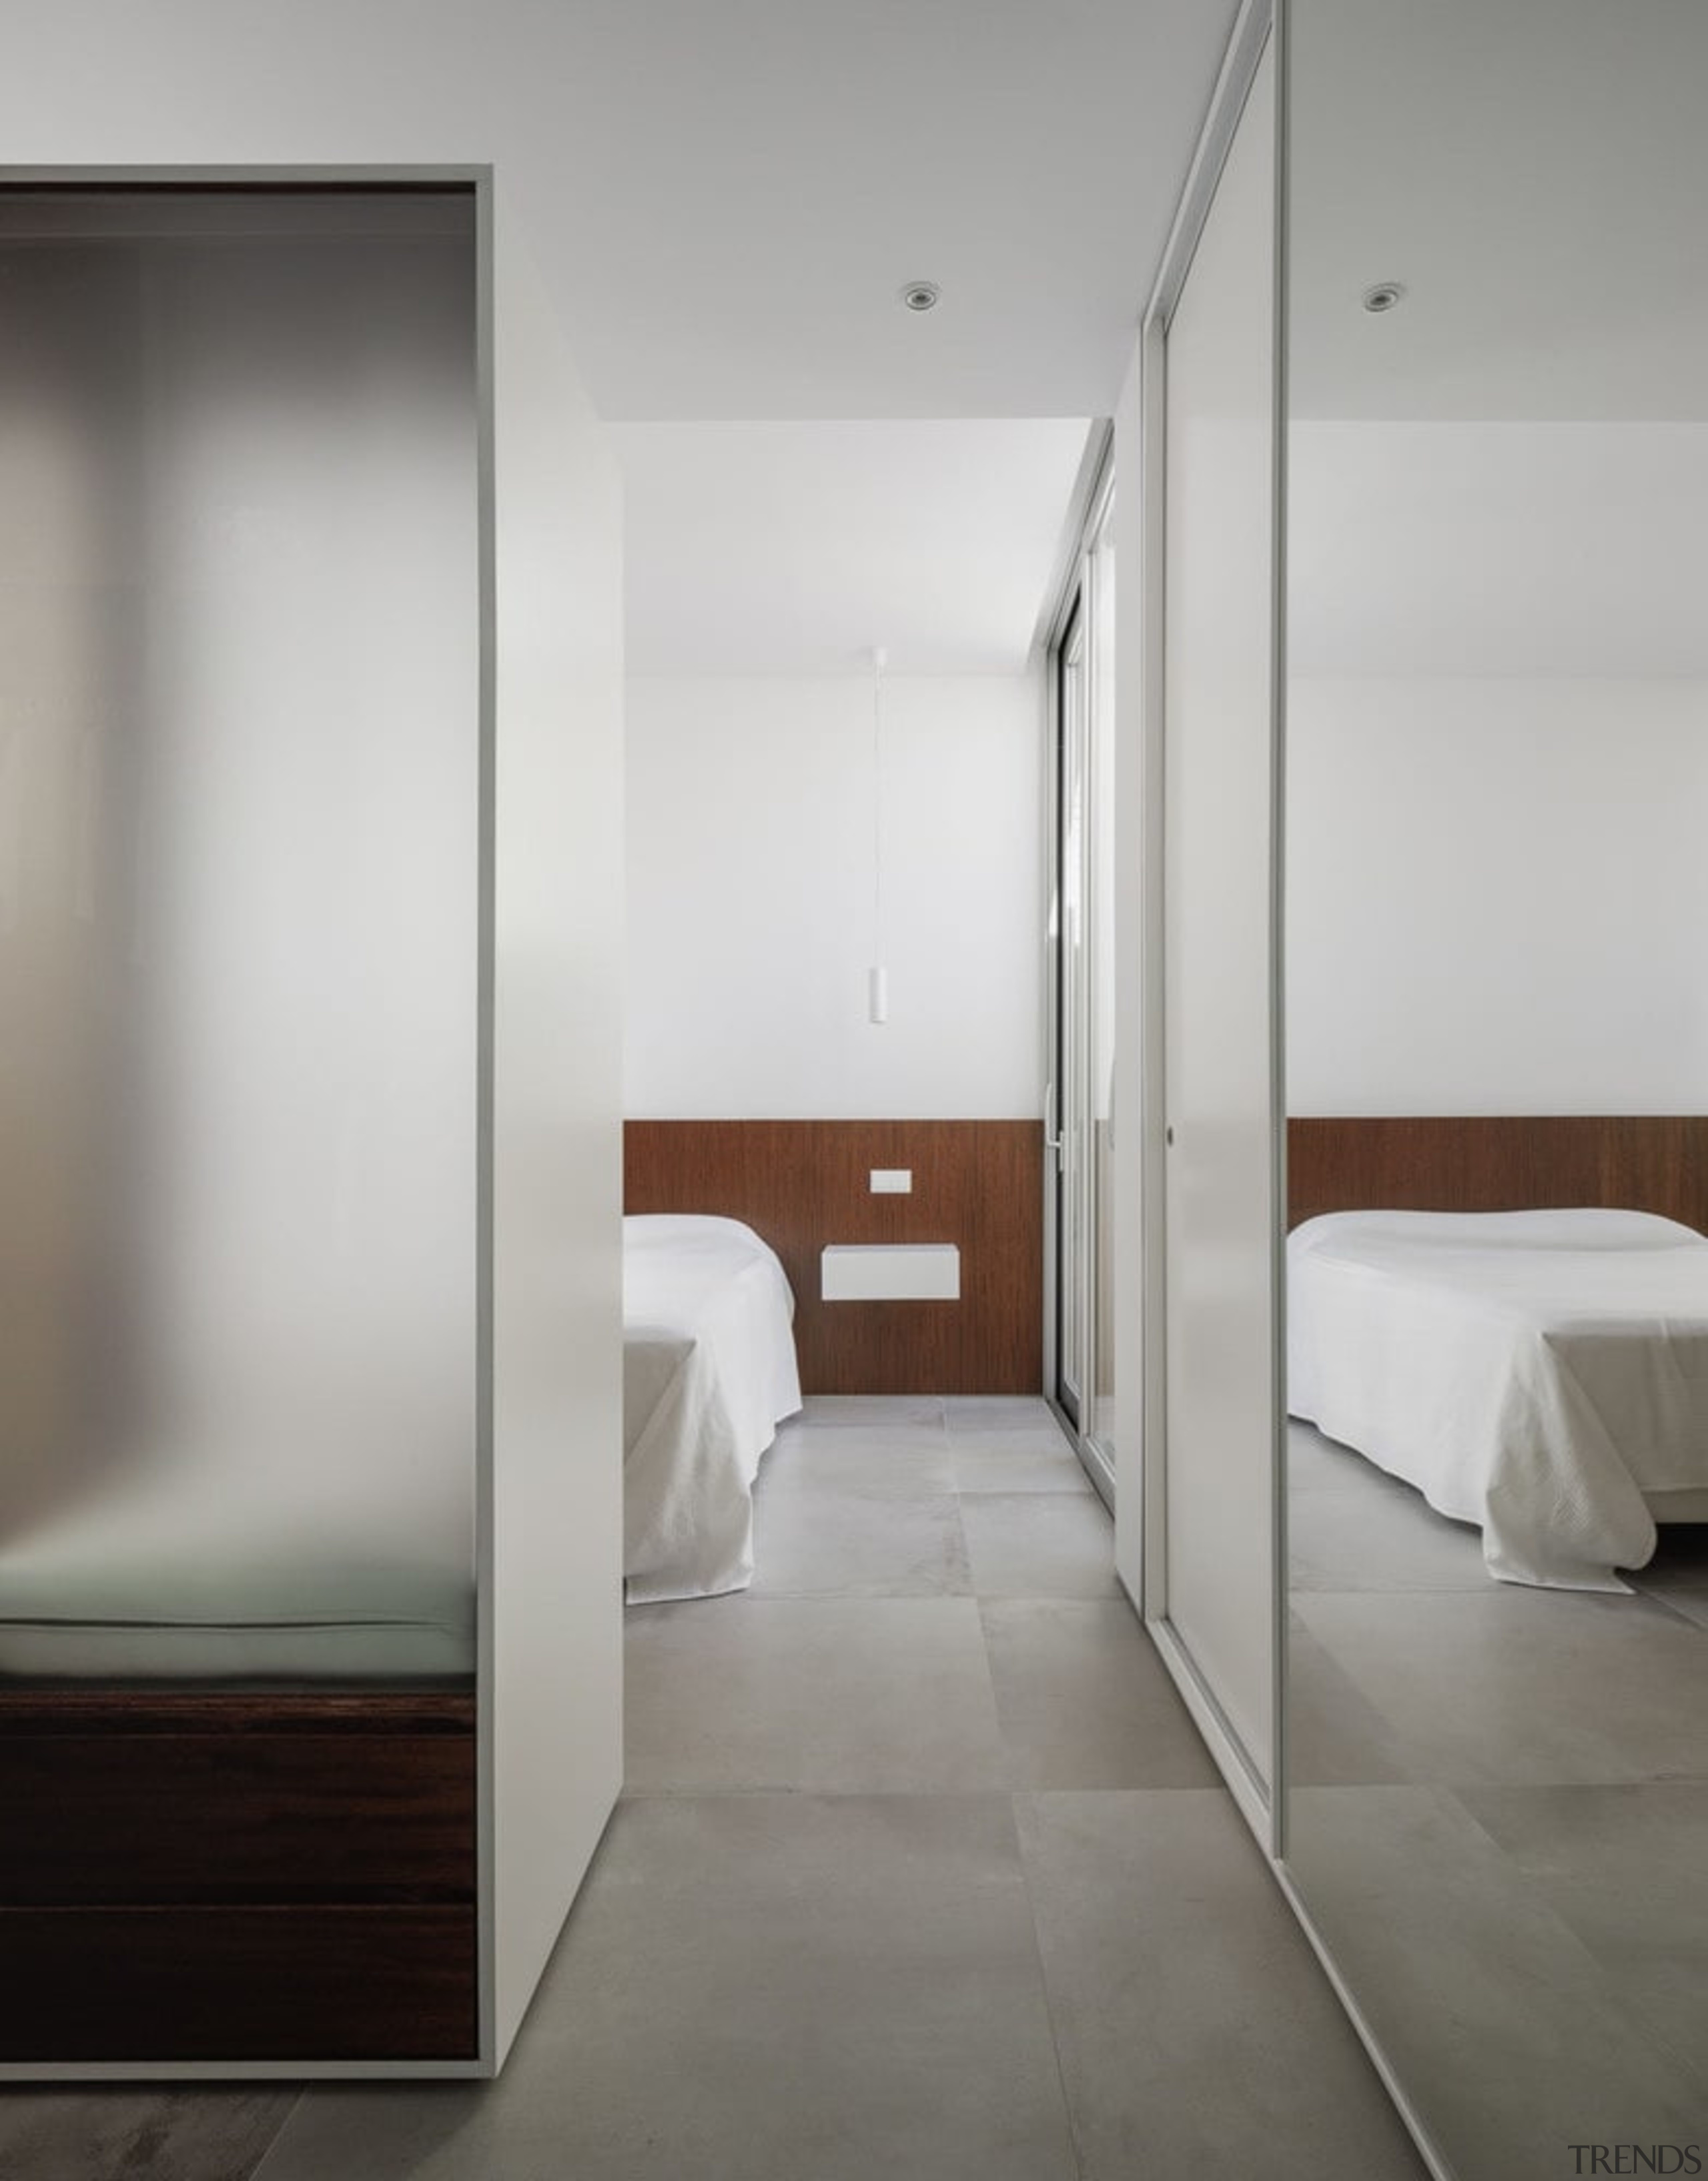 Large translucent screens ensure privacy without sacrificing light architecture, ceiling, floor, interior design, room, gray